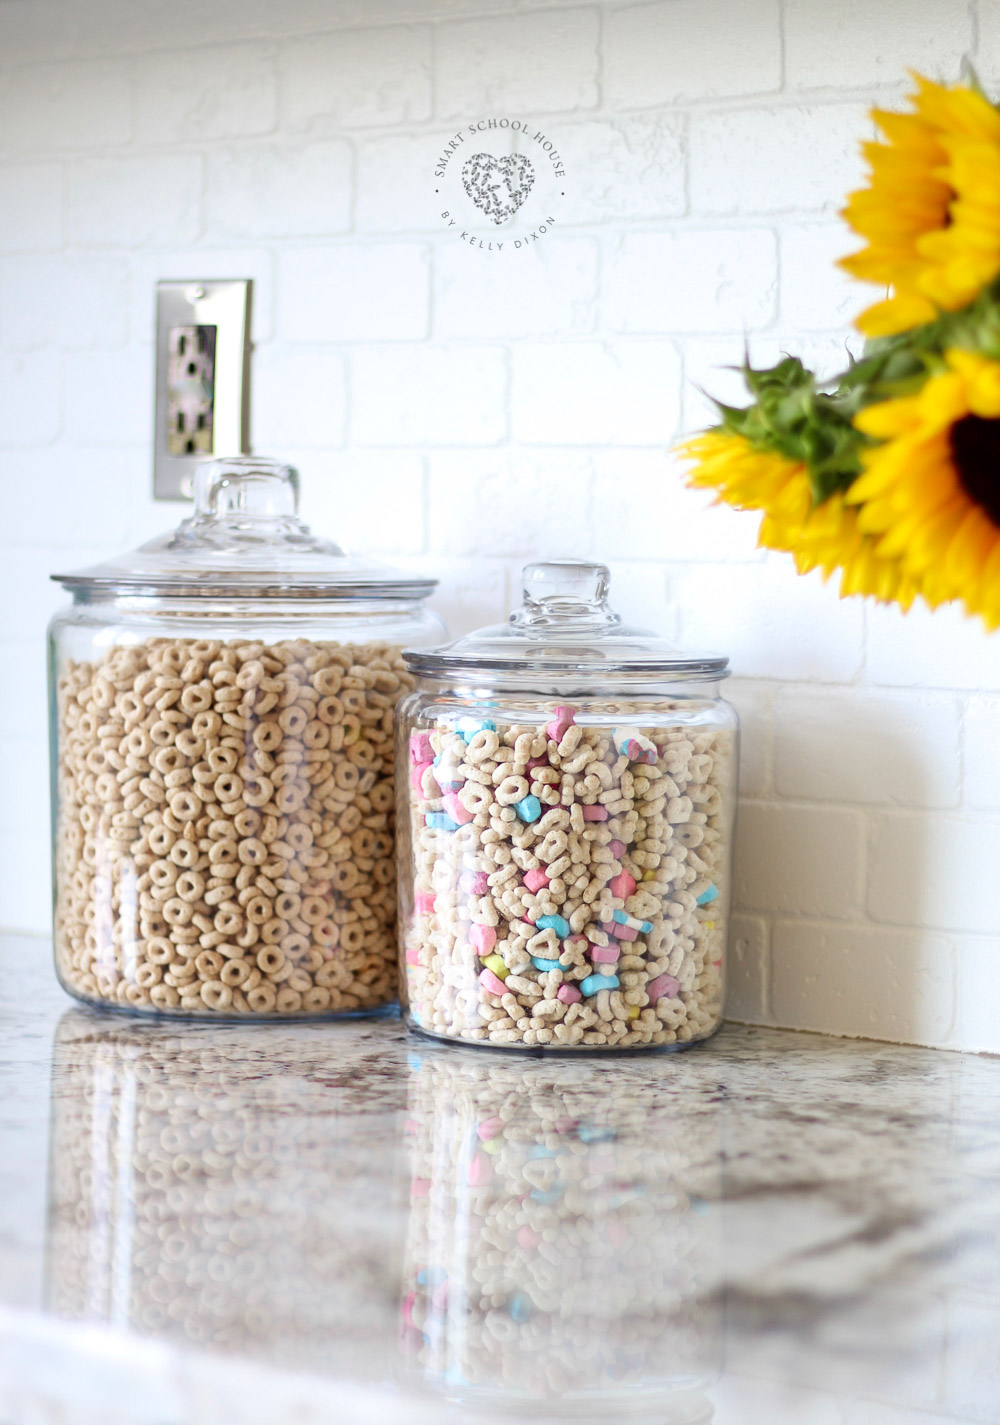 Cheerios and Lucky Charms in glass jars on my kitchen counter. Adds a warm, charming, and kid friendly energy to our family kitchen